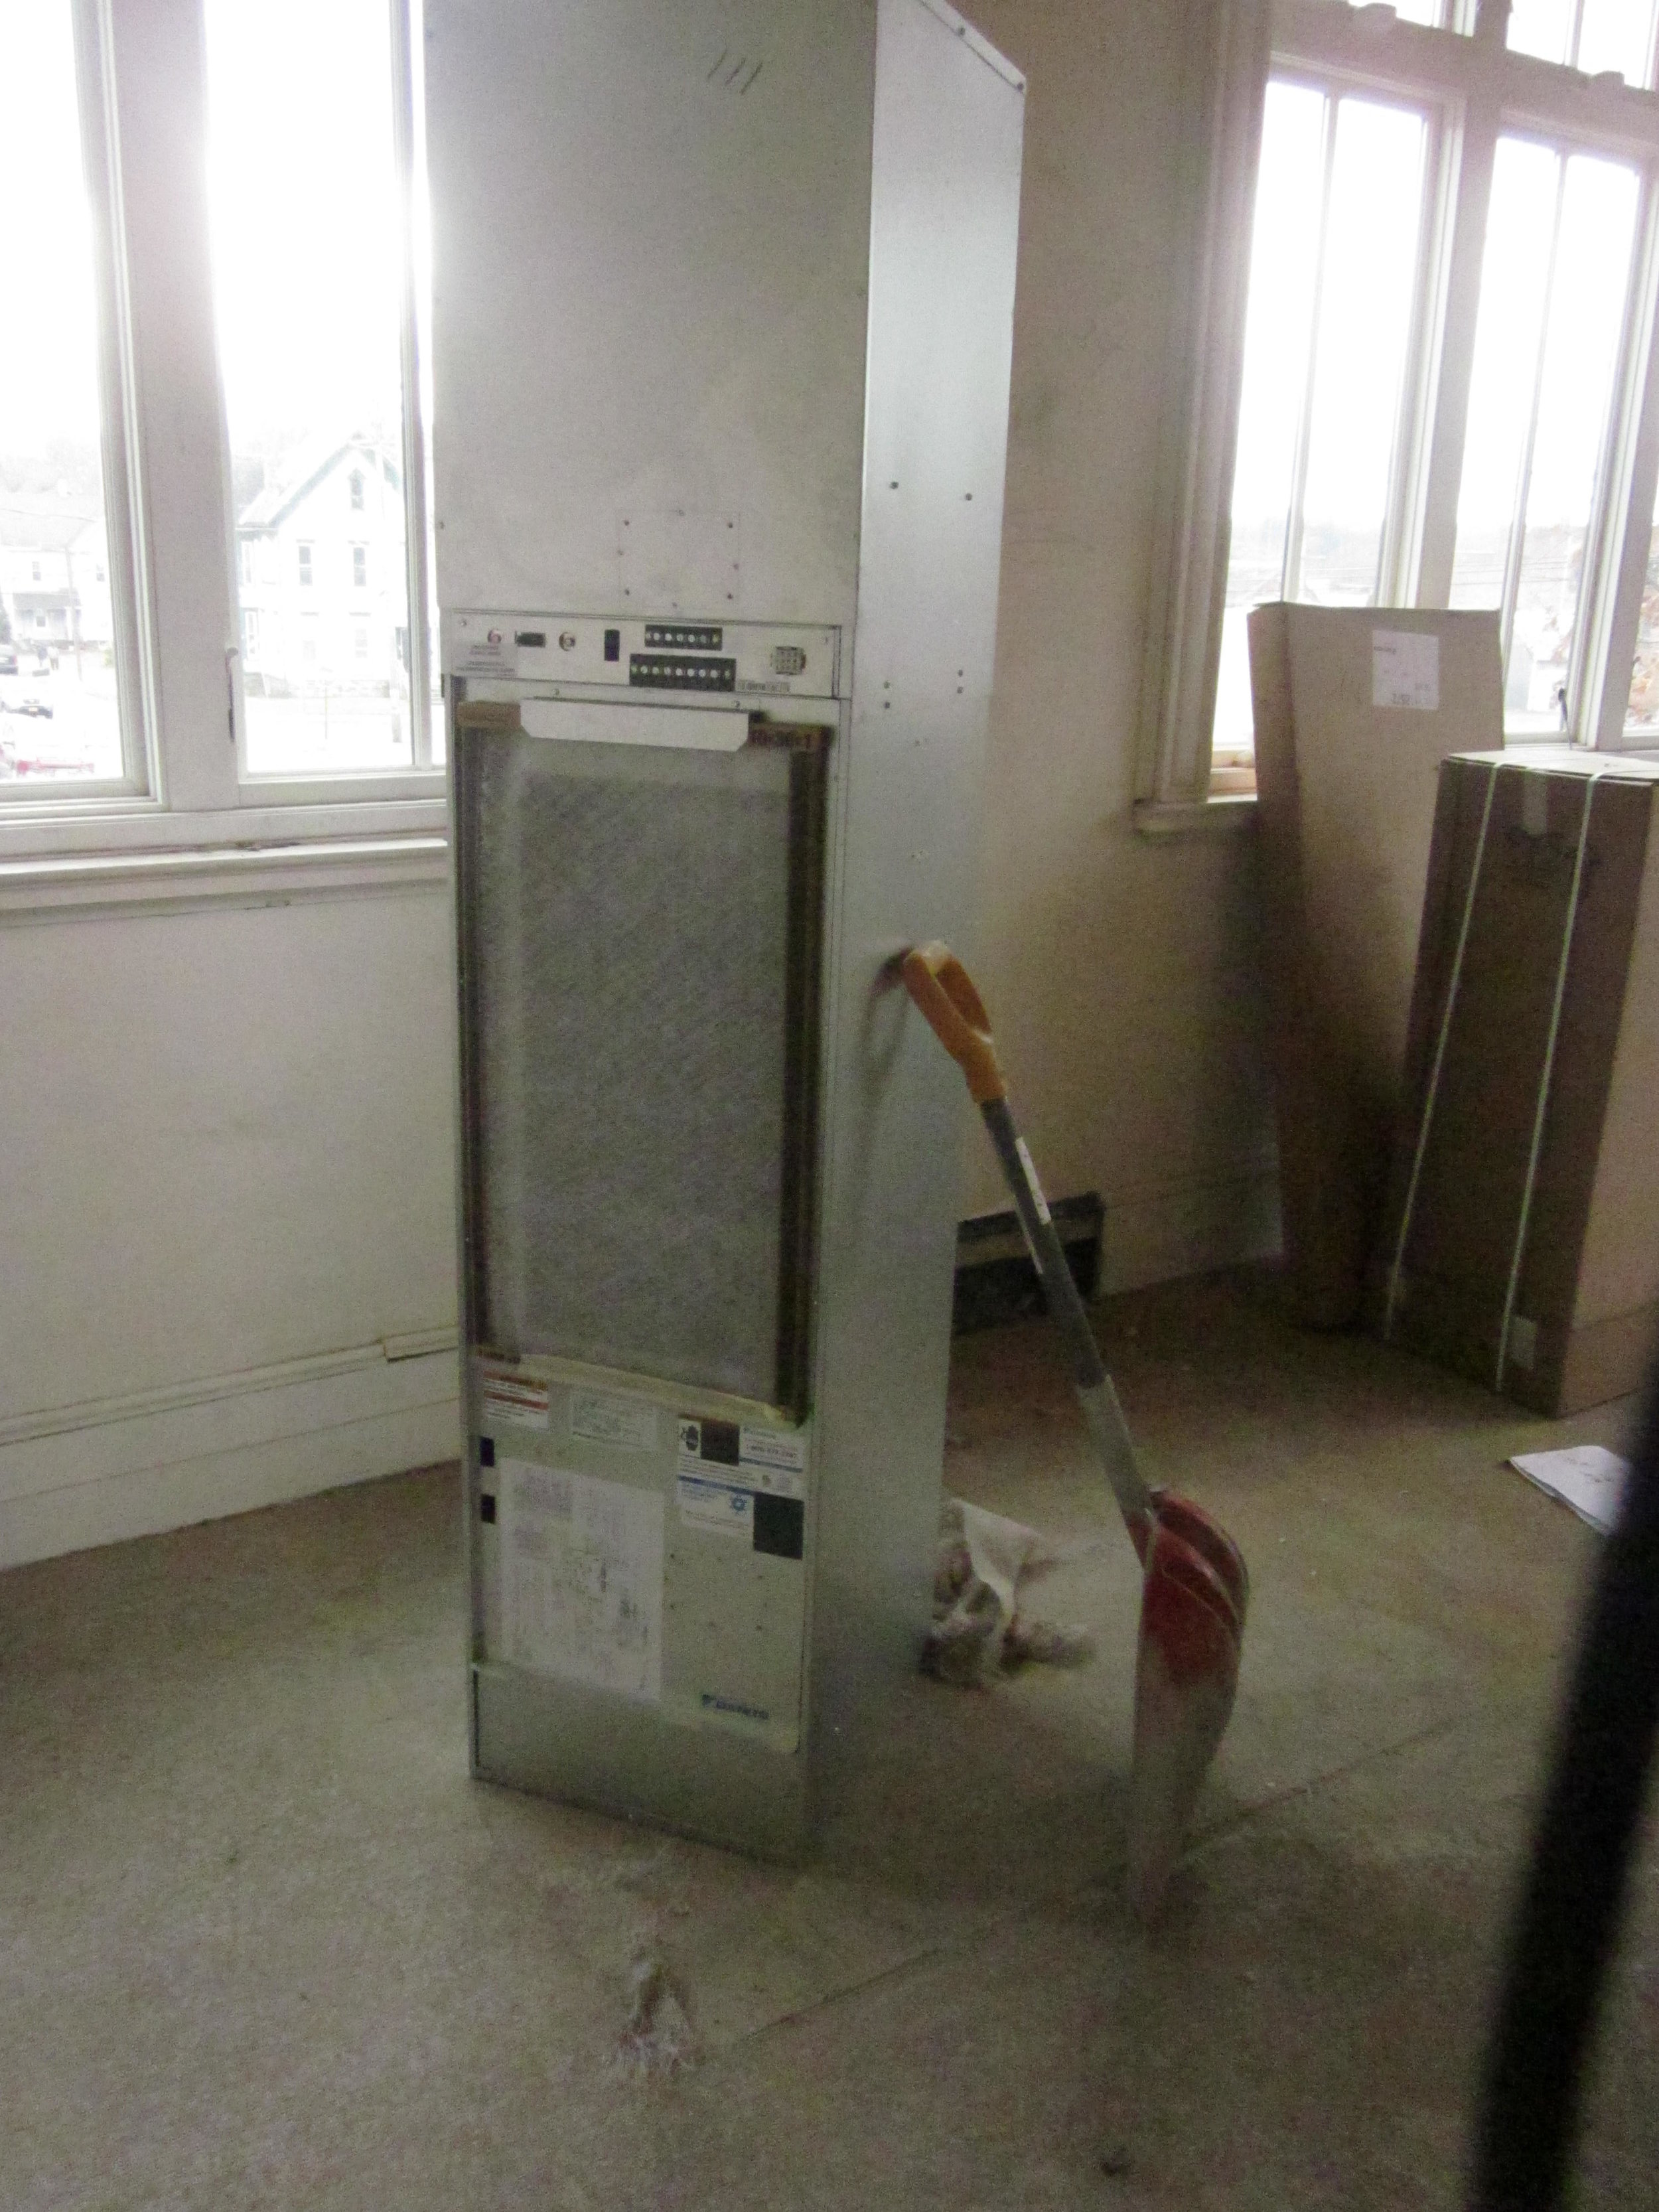 New heat pumps in each room will replace the old radiators.